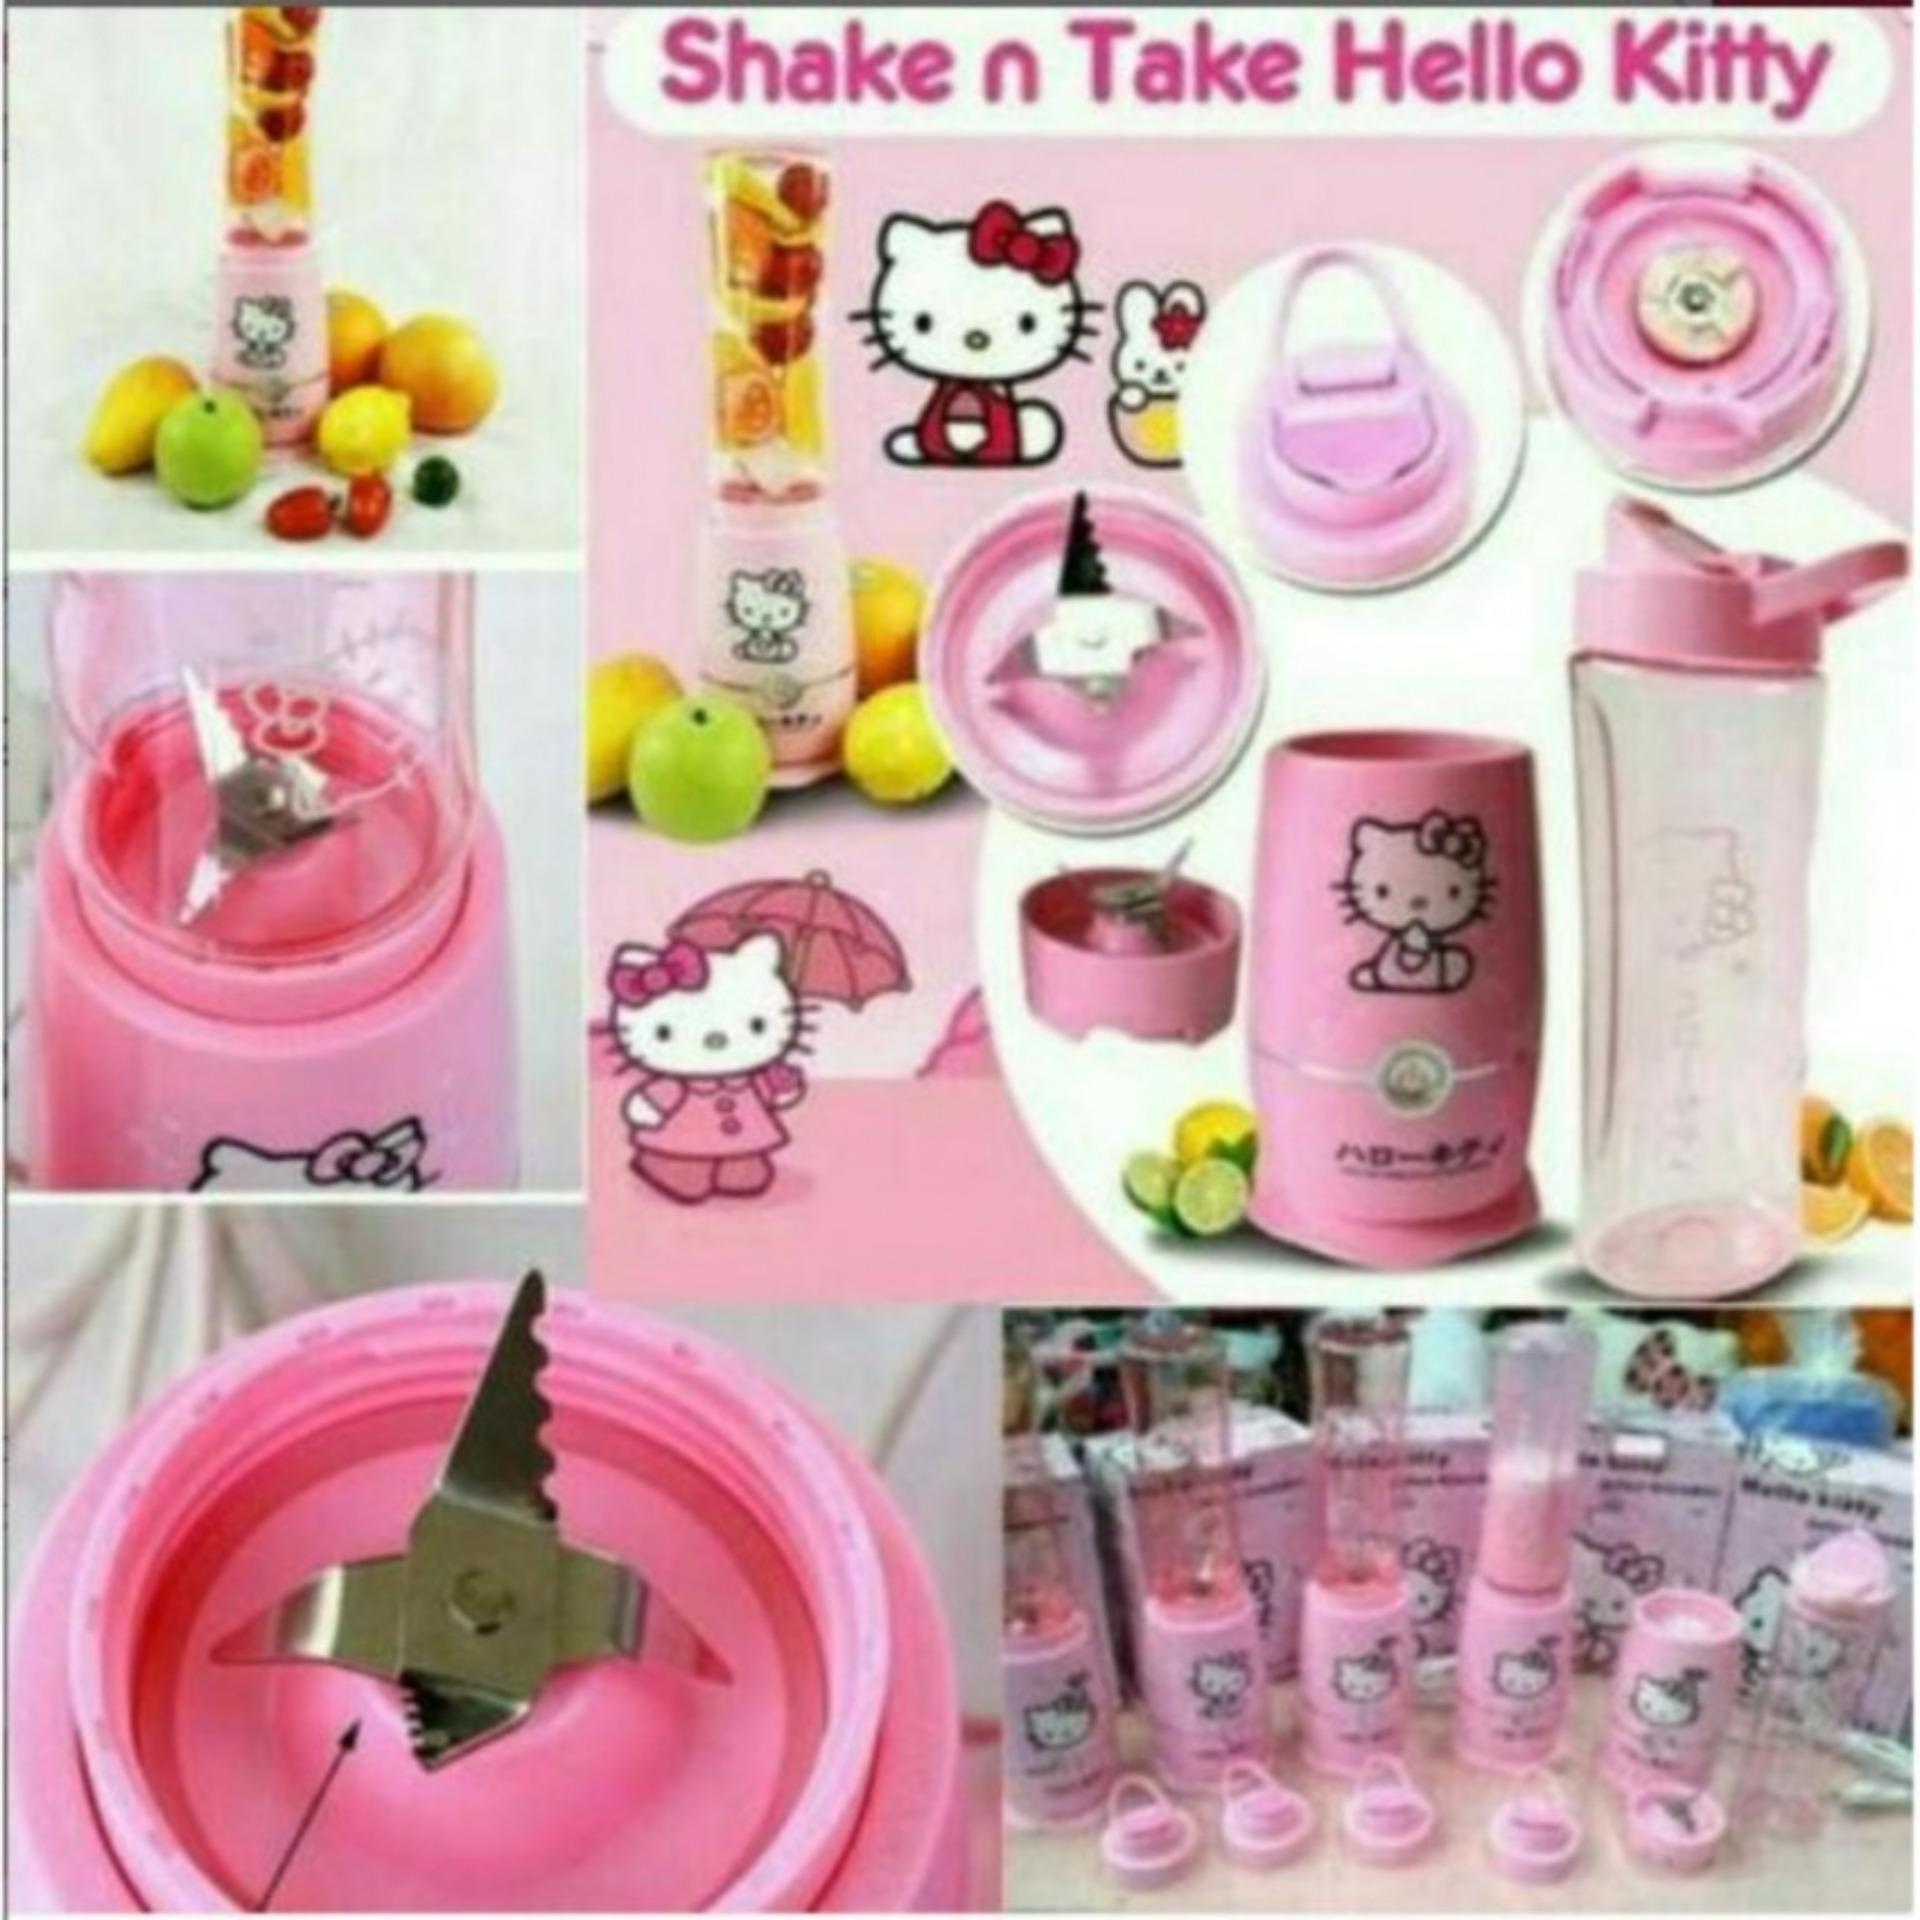 Perbandingan Harga Juicer Blender Shake Kitty 2 Cups Shake N Take Gen 4 Hello Kitty Di Indonesia